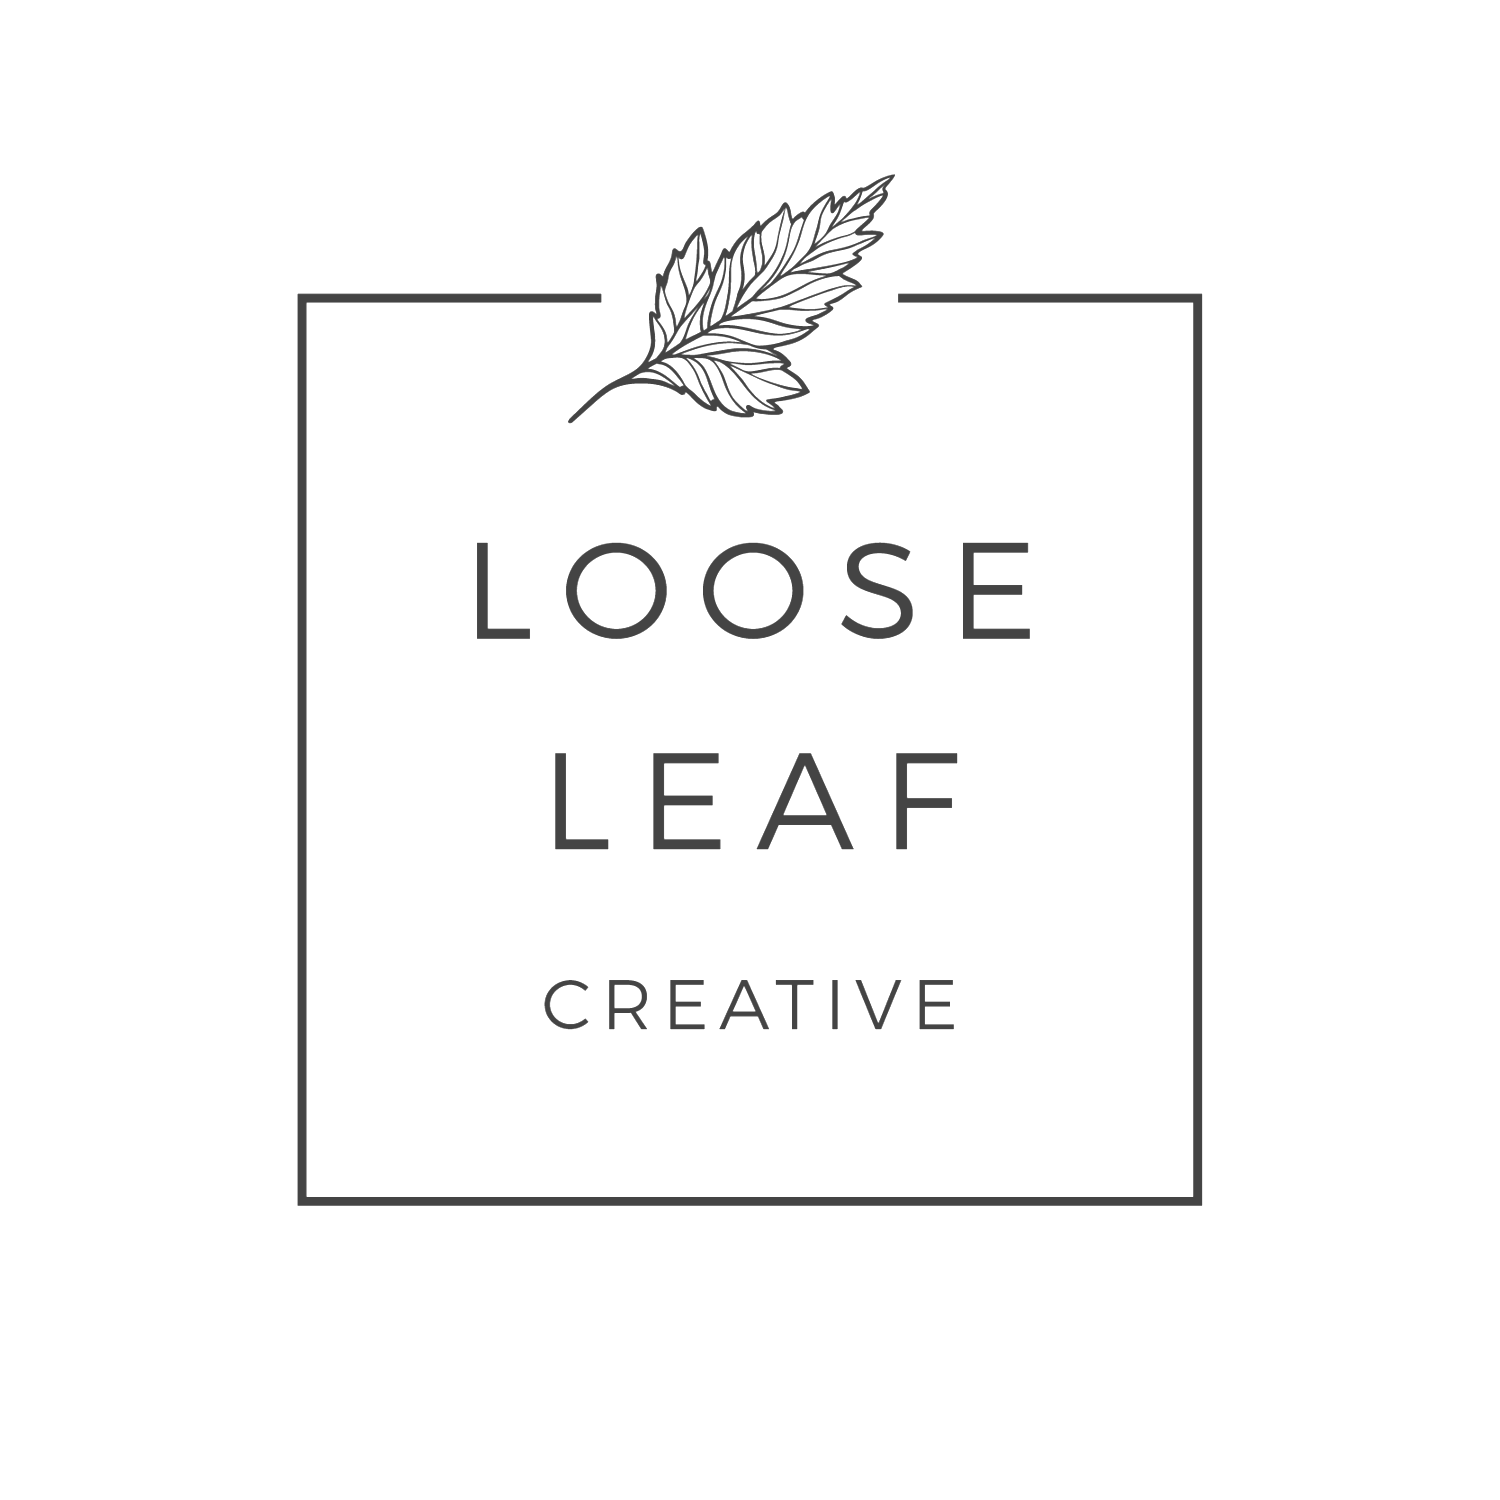 Loose Leaf Creative